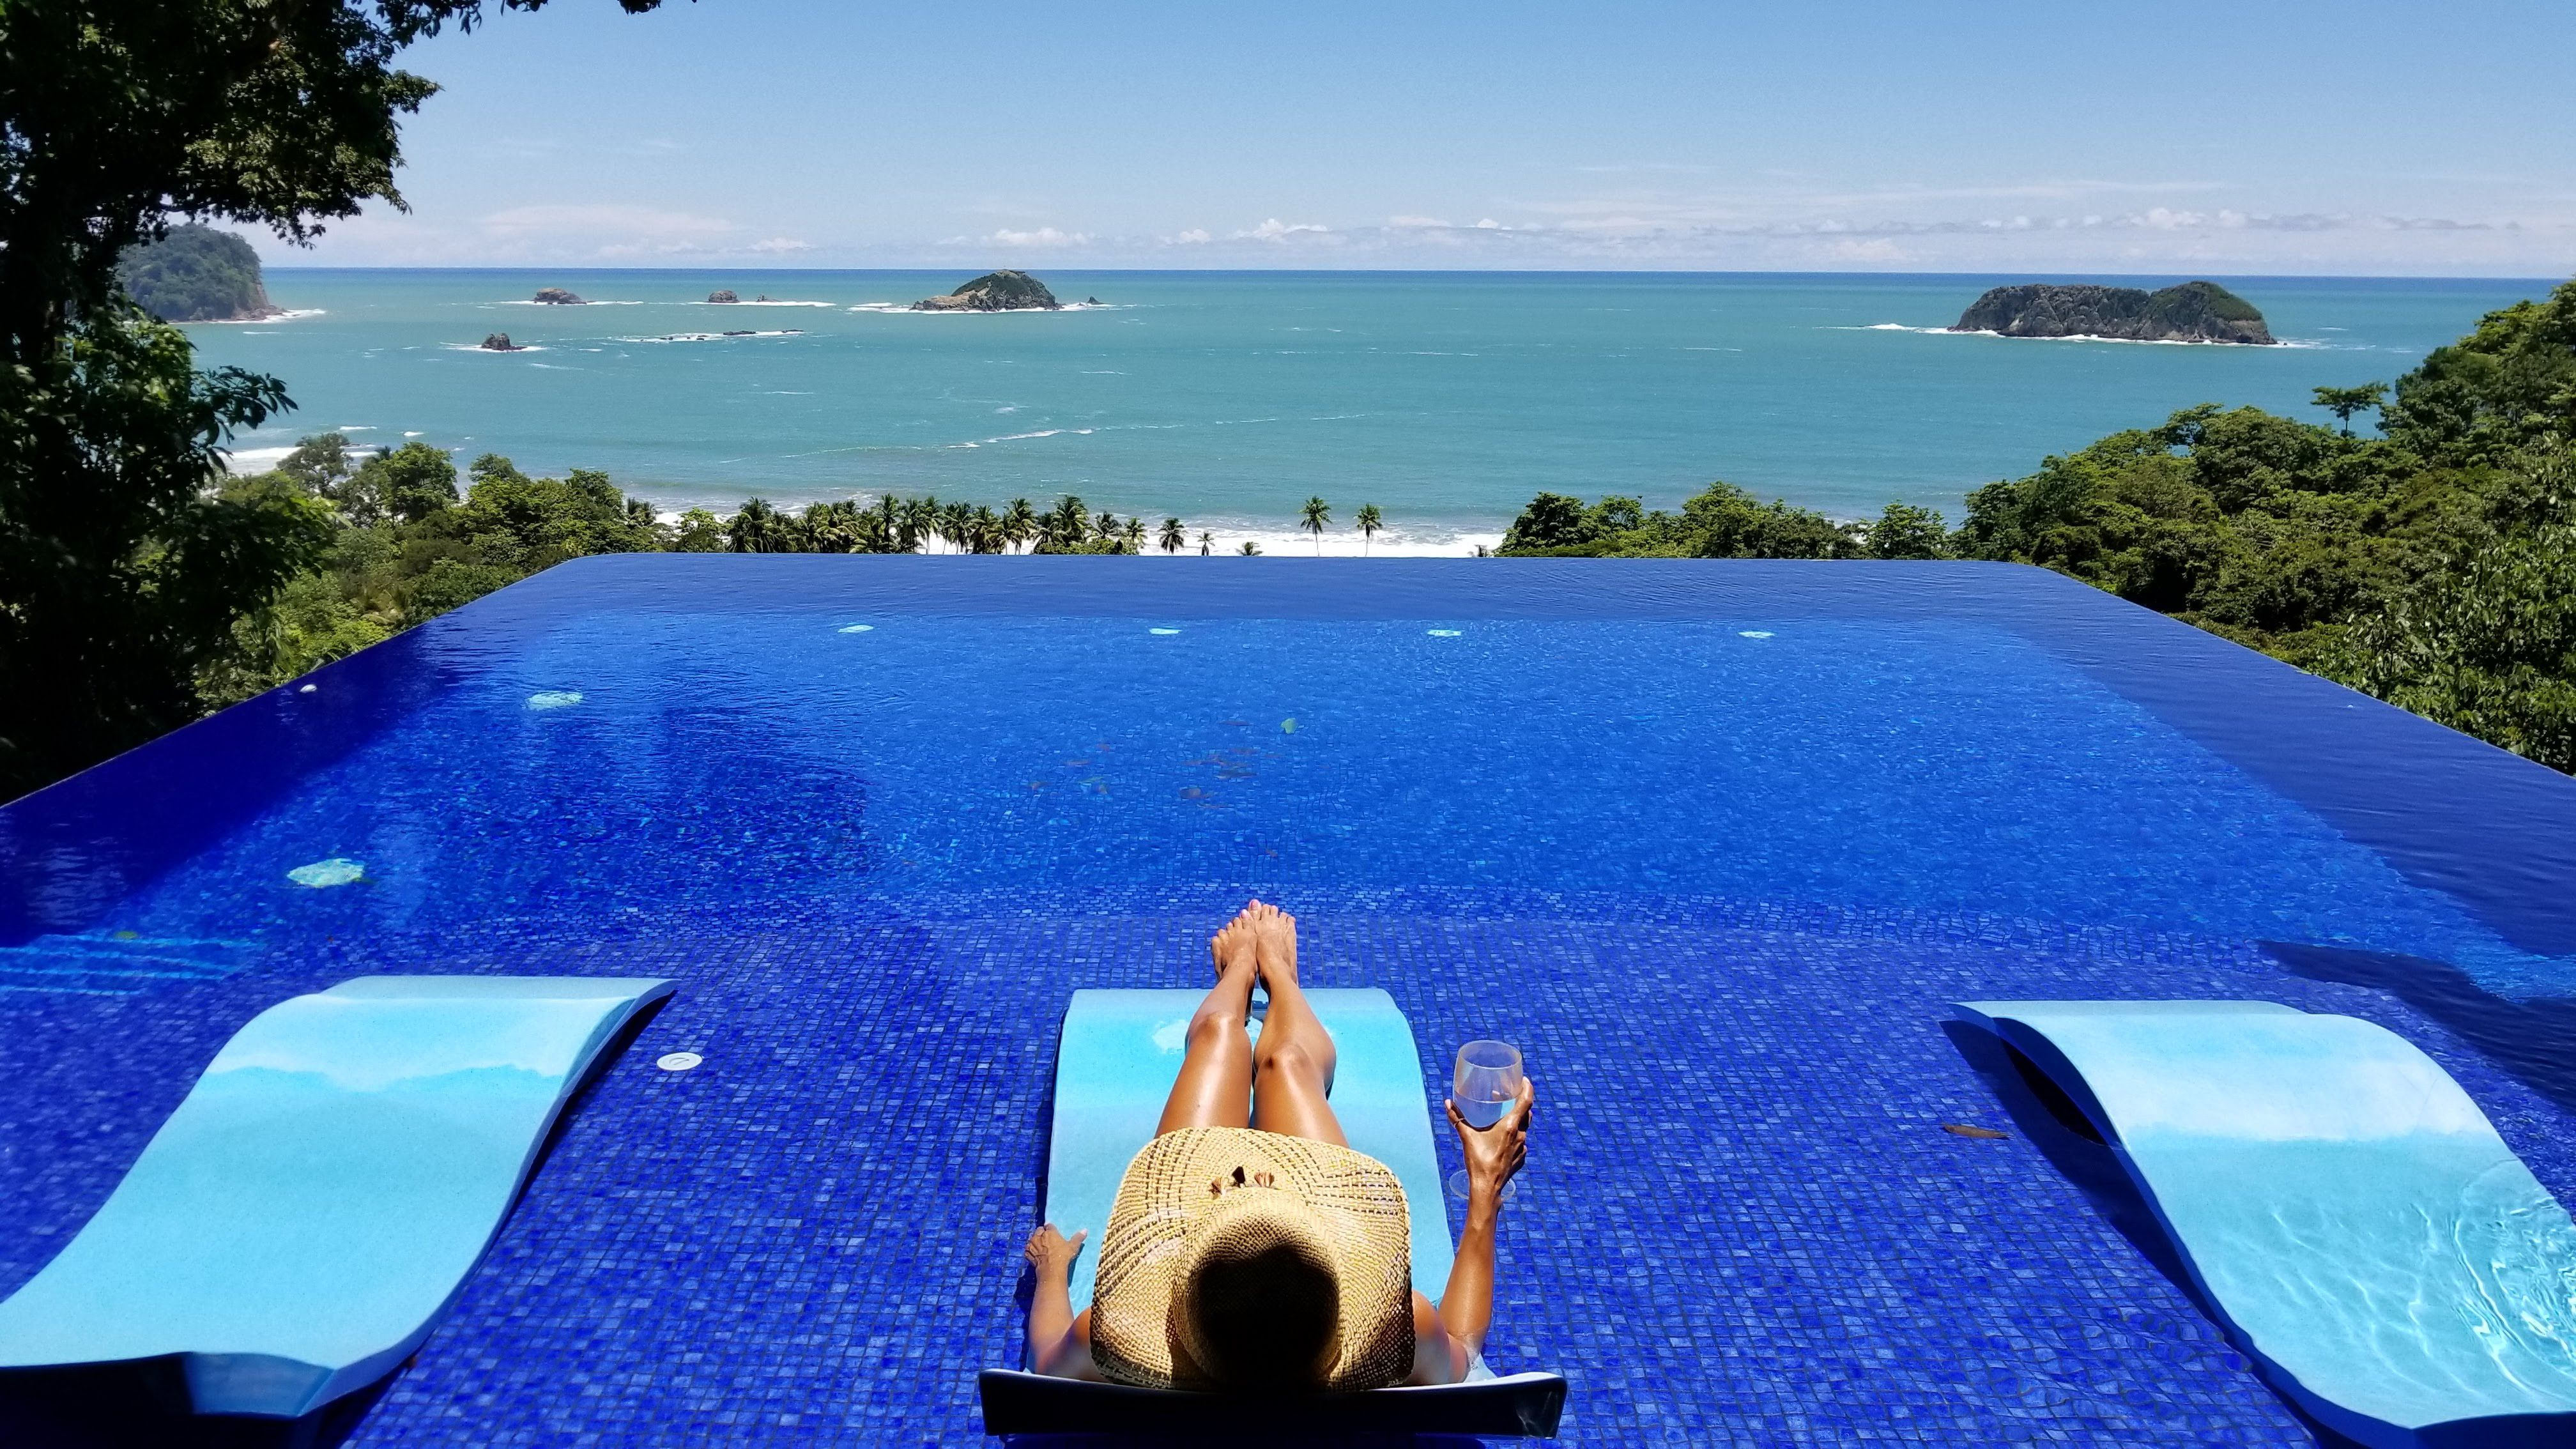 If you have CostaRica luxury vacations on the radar and